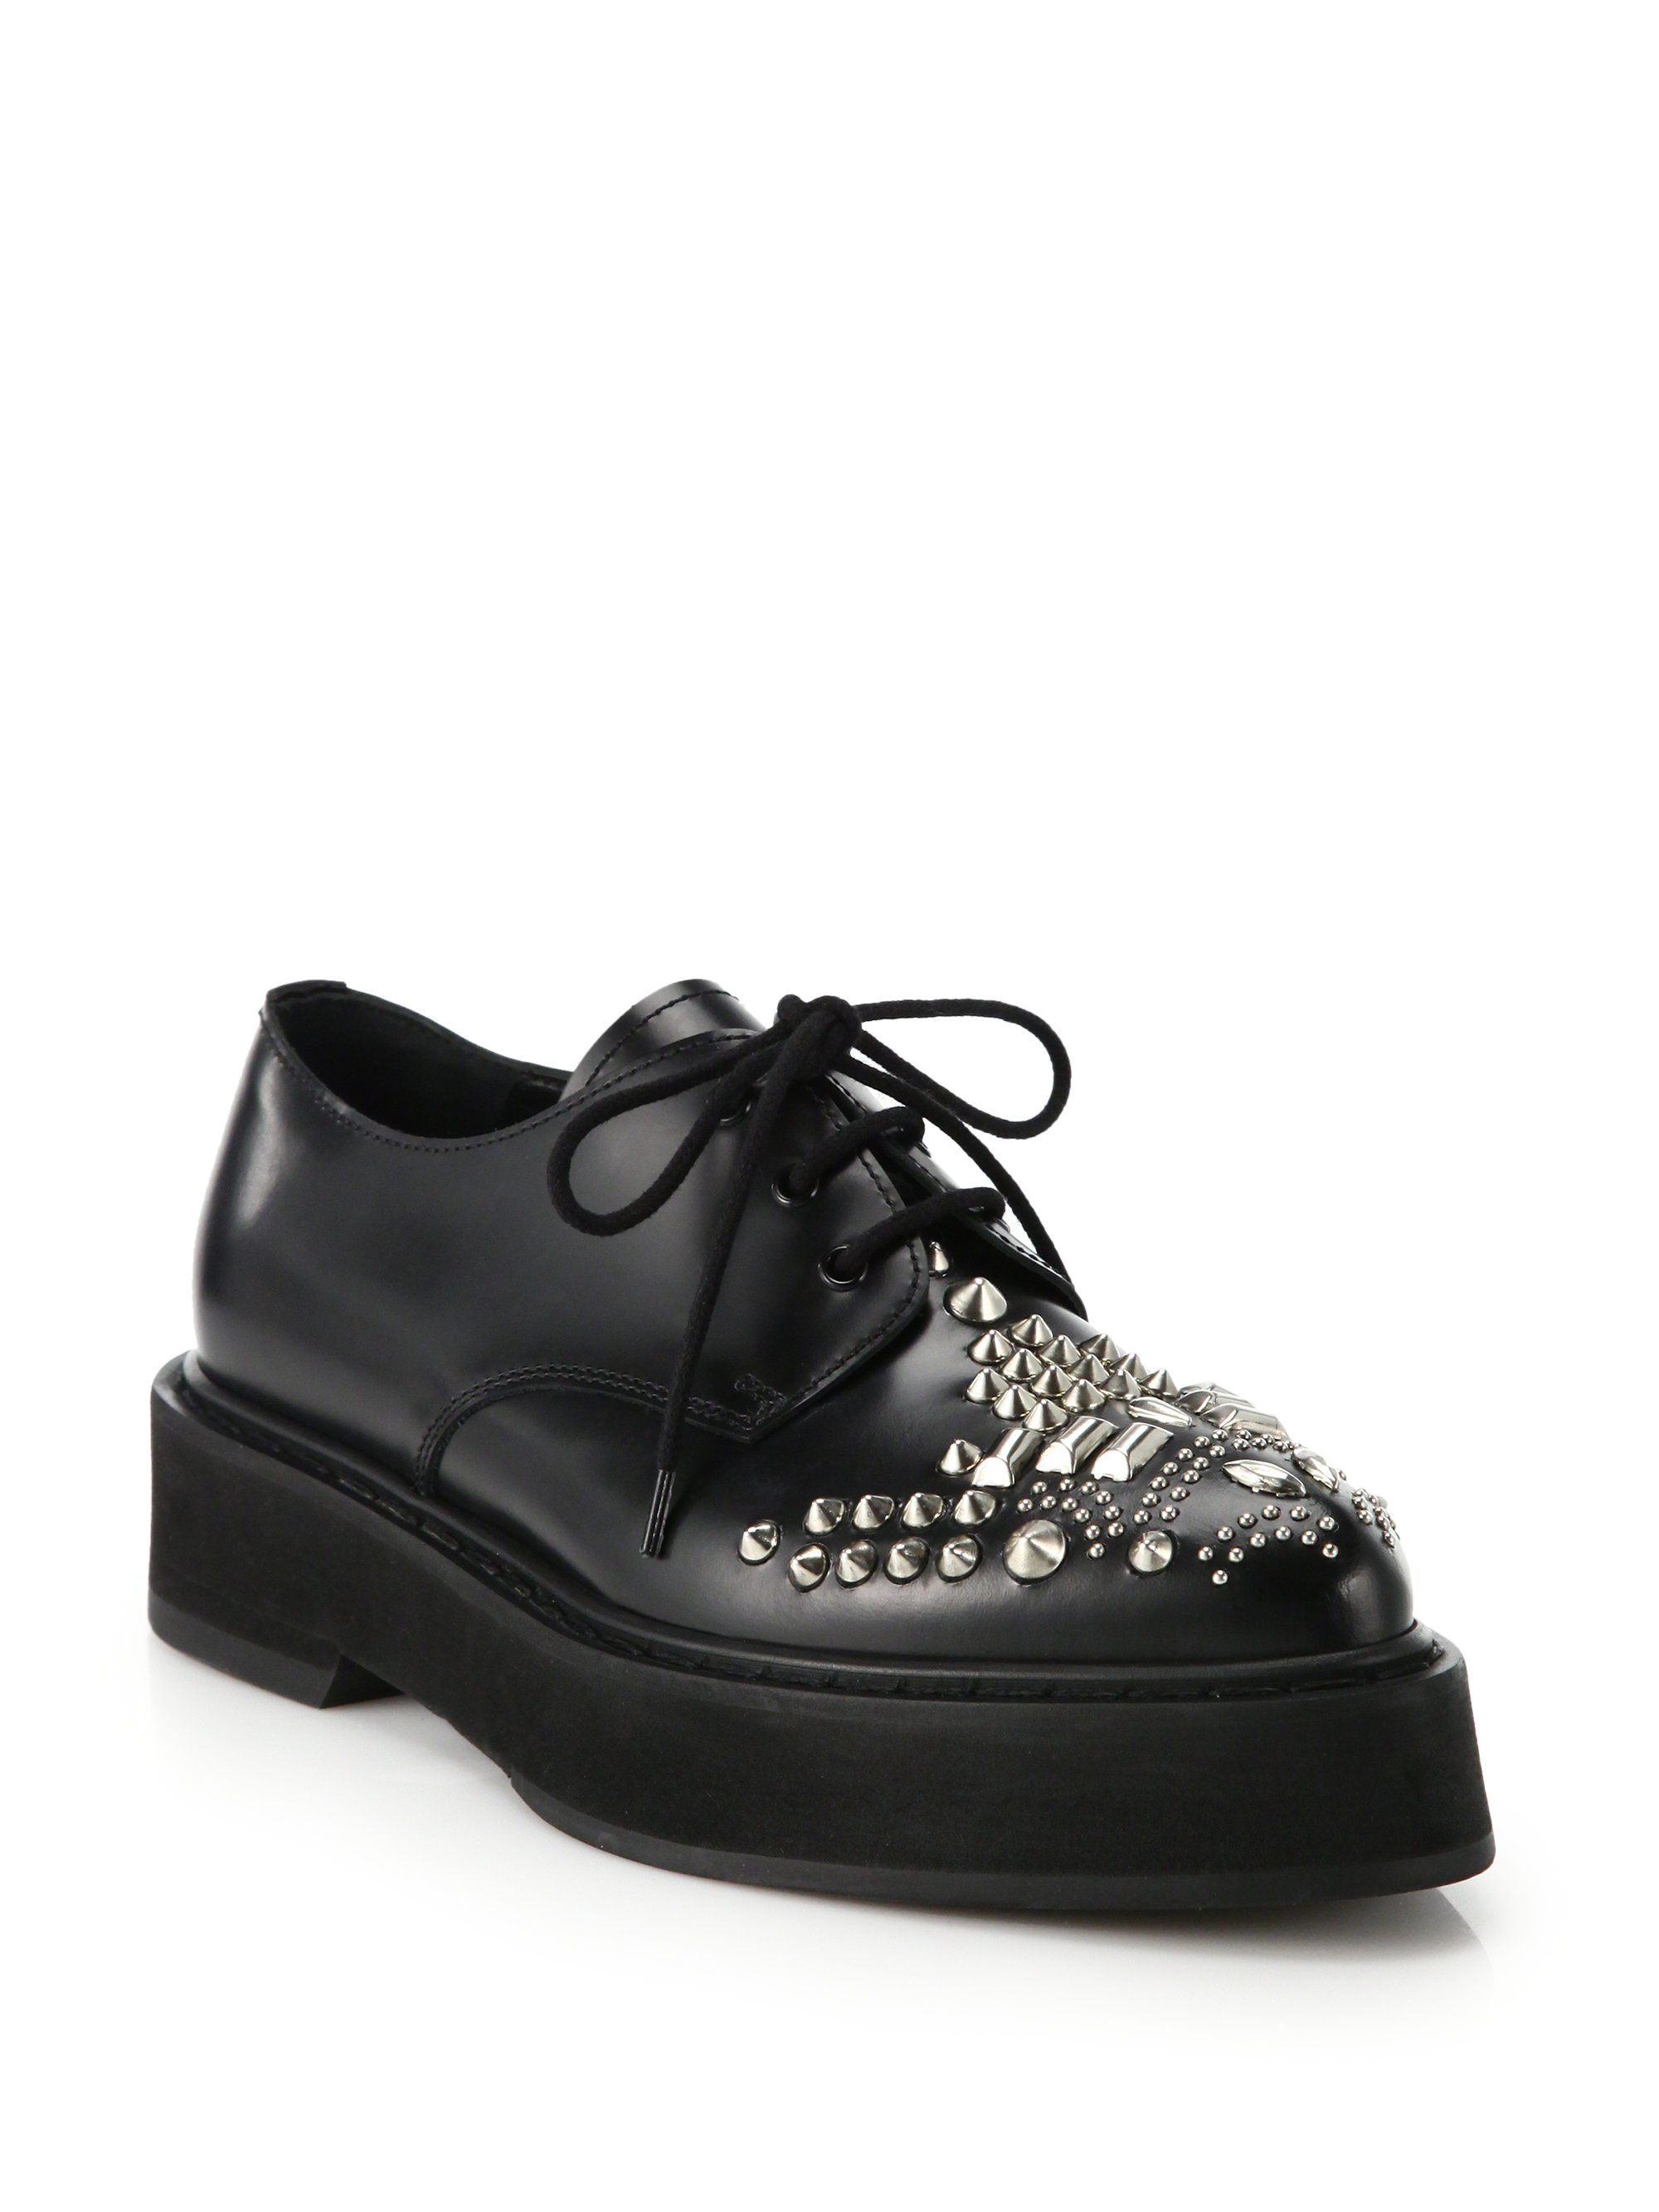 cheap price low shipping fee Alexander McQueen Studded Leather Oxfords from china low shipping fee free shipping sale online cheap enjoy 6J0w3DYT